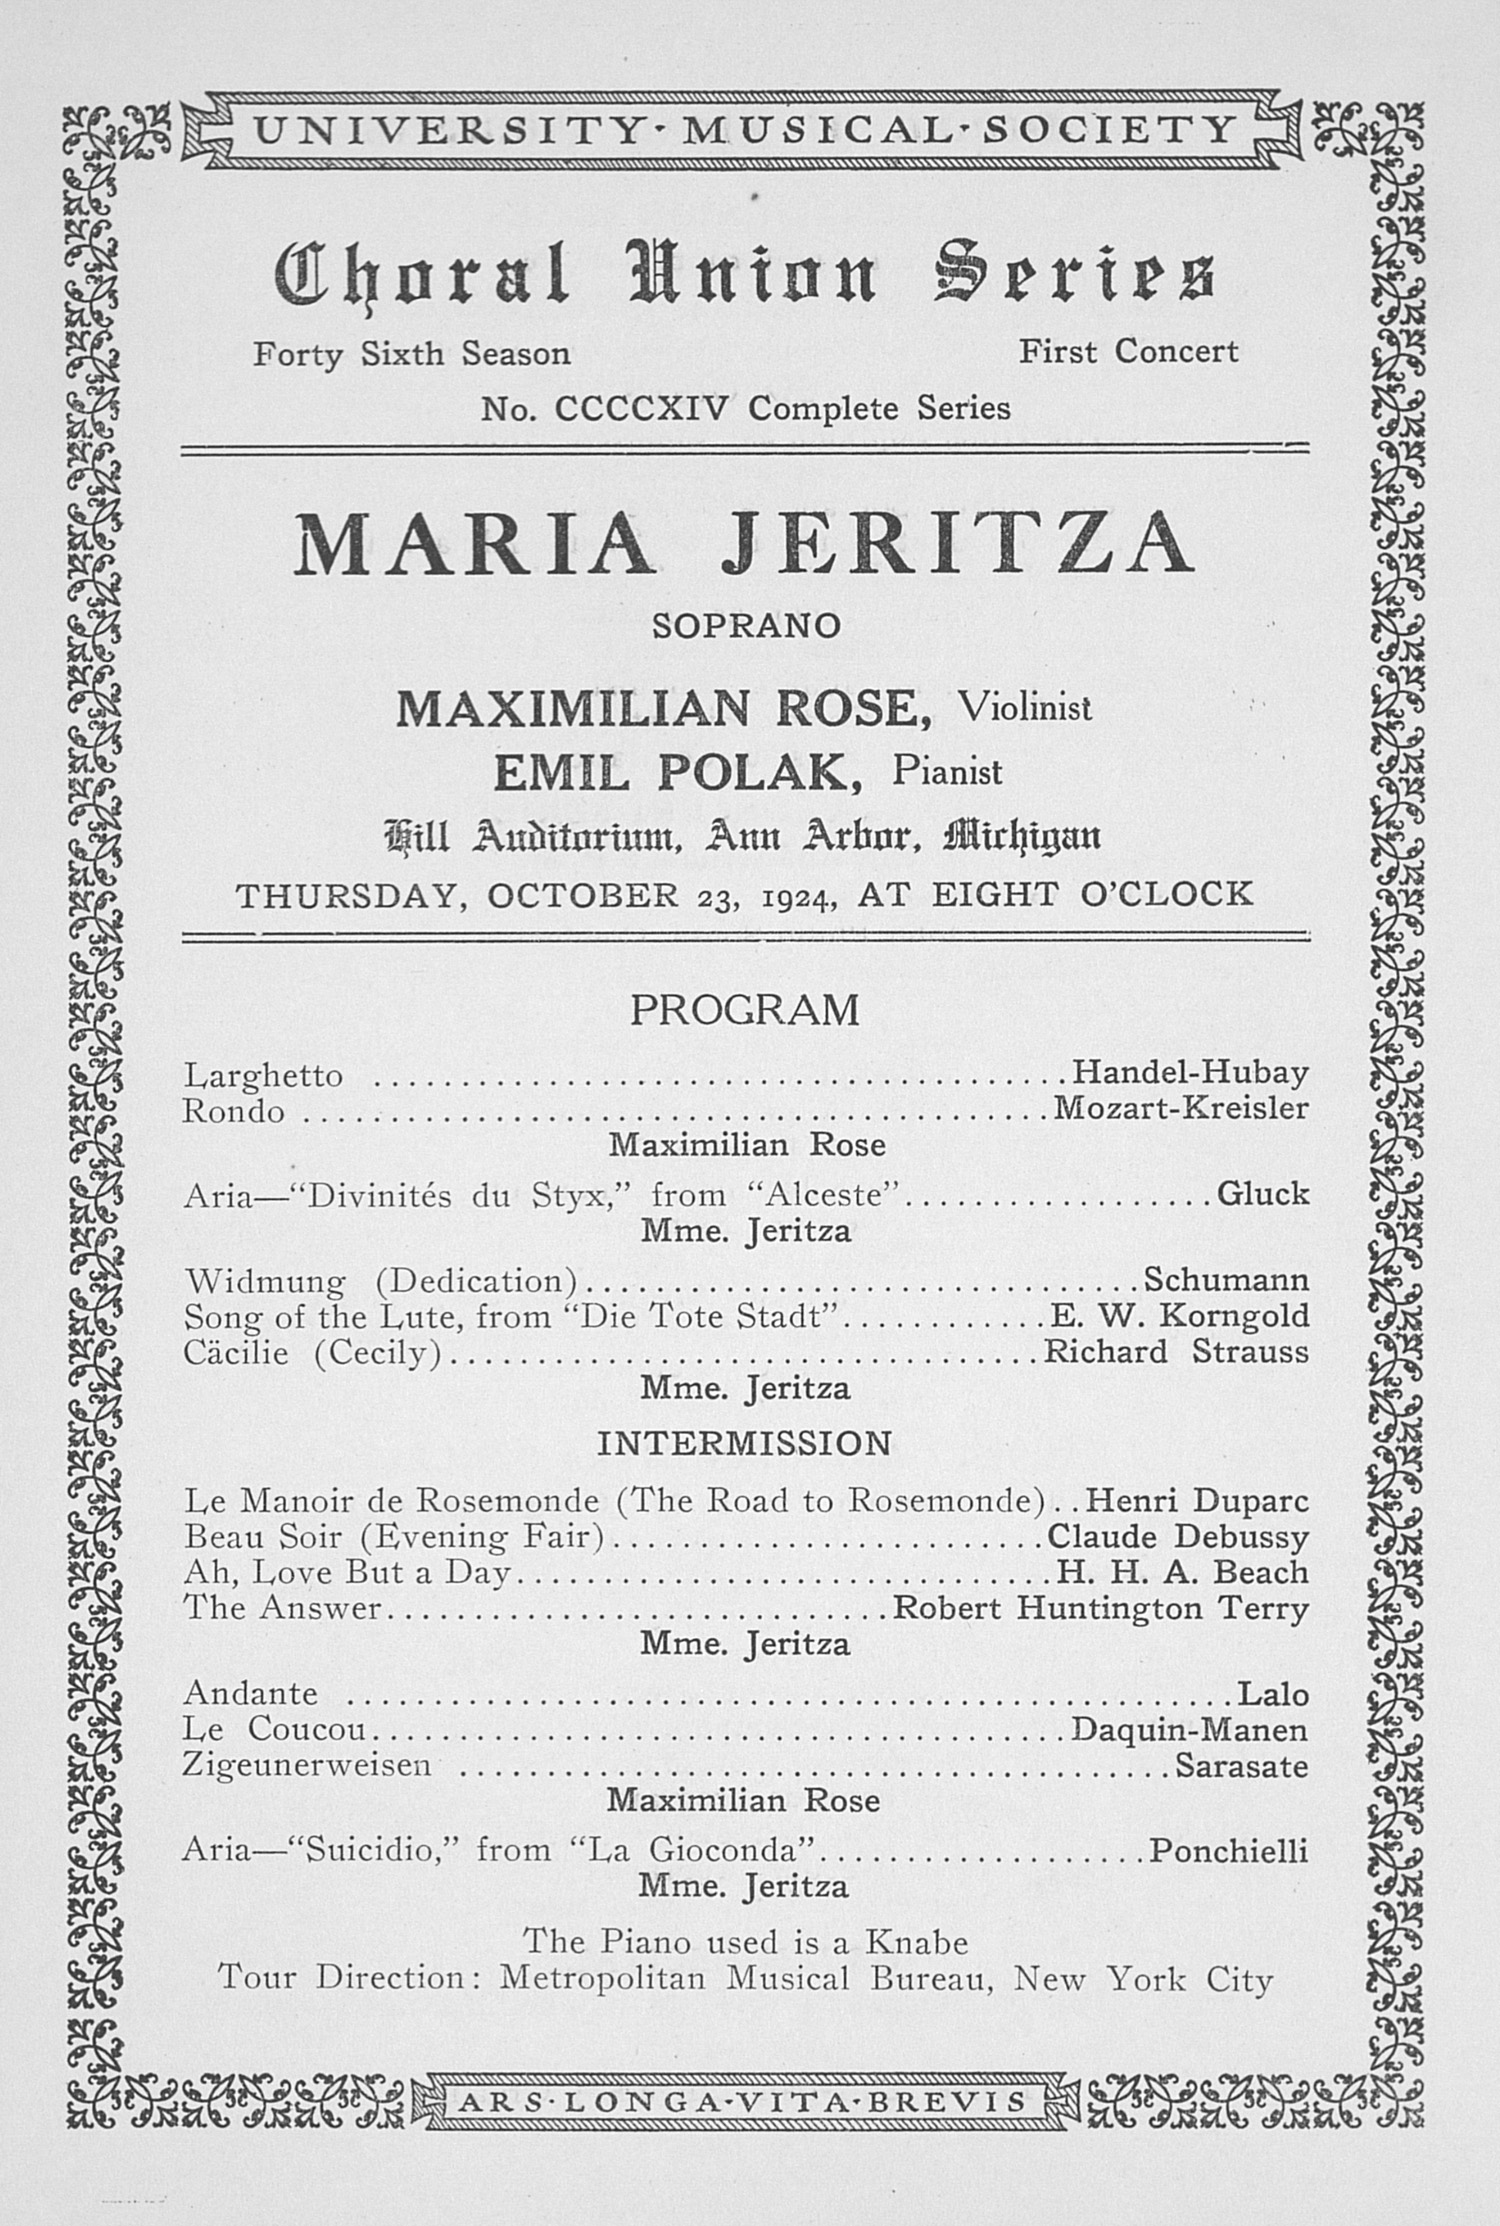 UMS Concert Program, October 23, 1924: Choral Union Series -- Maria Jeritza image